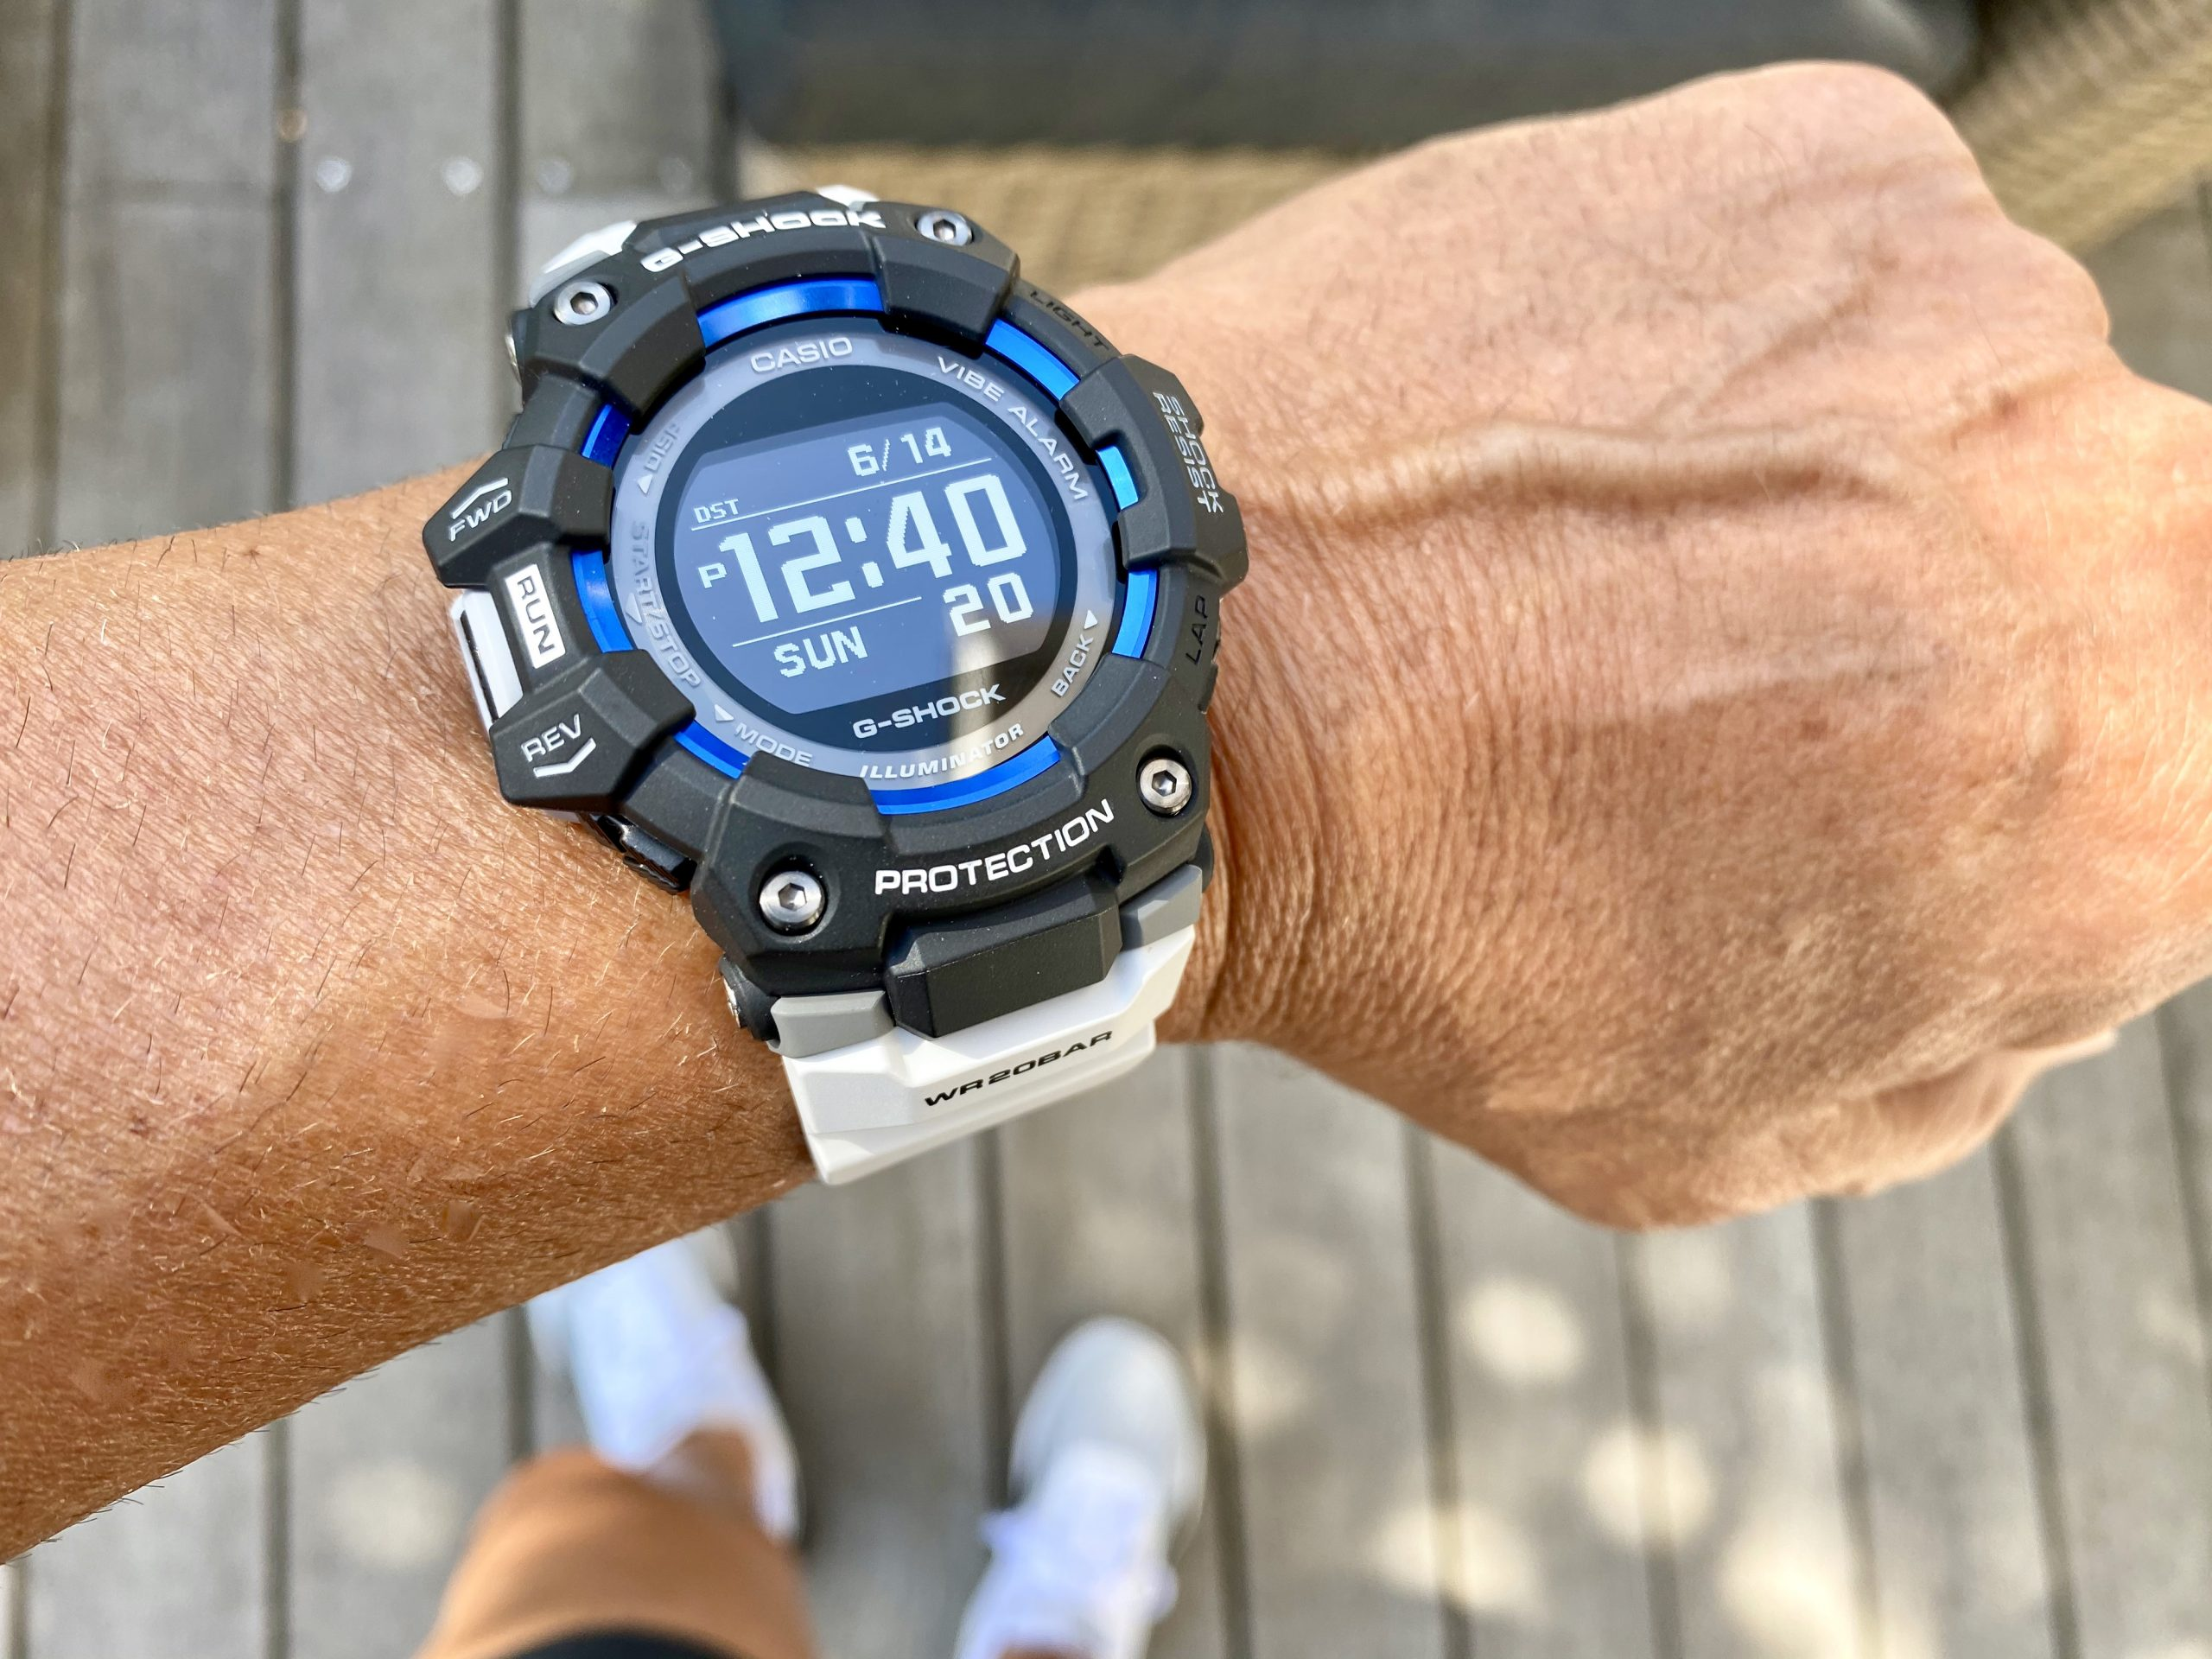 Man's wrist wearing G-SHOCK GBD100 Watch from Casio with black face and white band